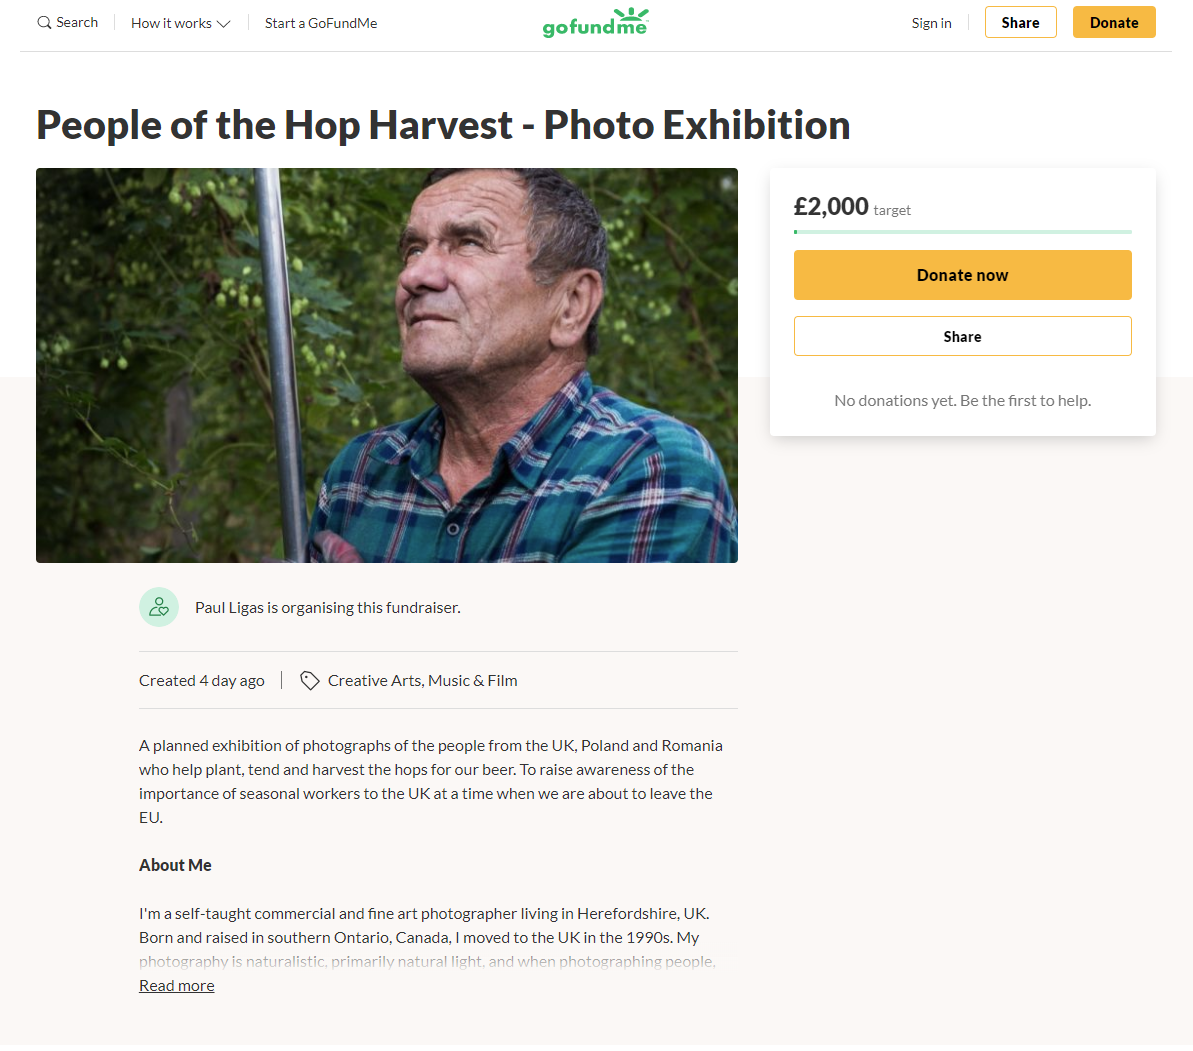 People of the Hop Harvest crowdfunding